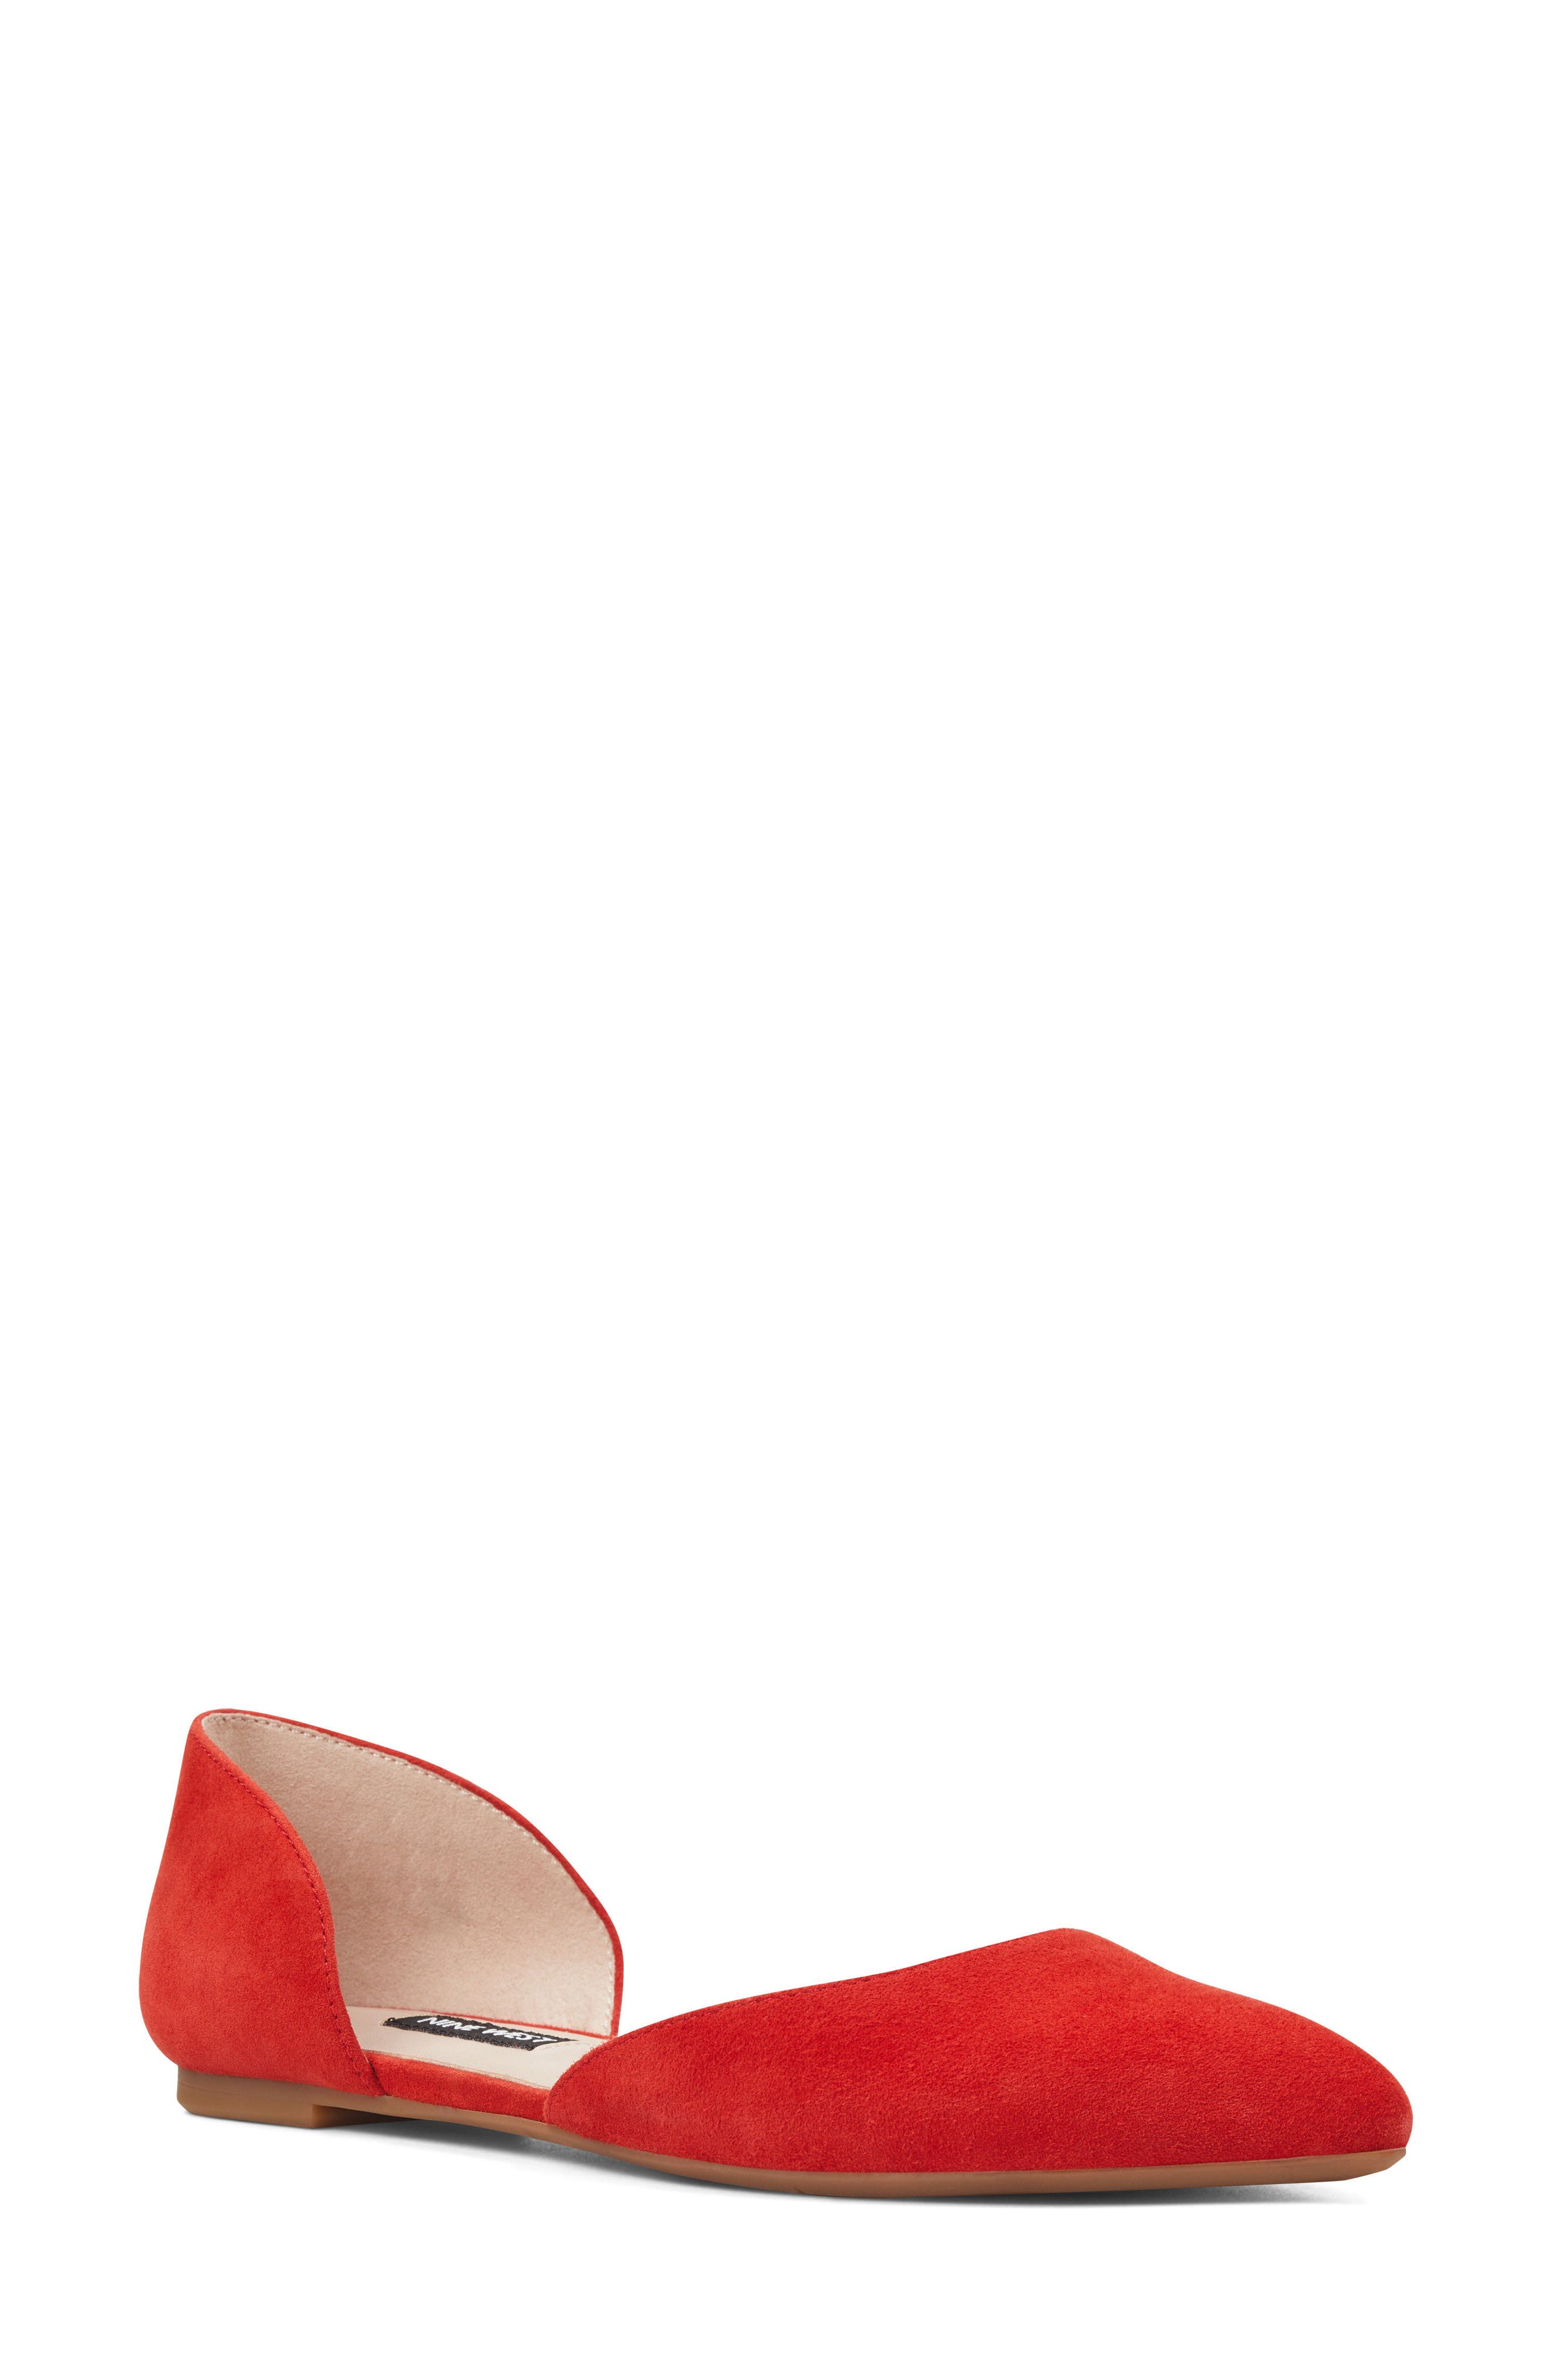 NINE WEST, Starship d'Orsay Flat, Main thumbnail 1, color, RED SUEDE